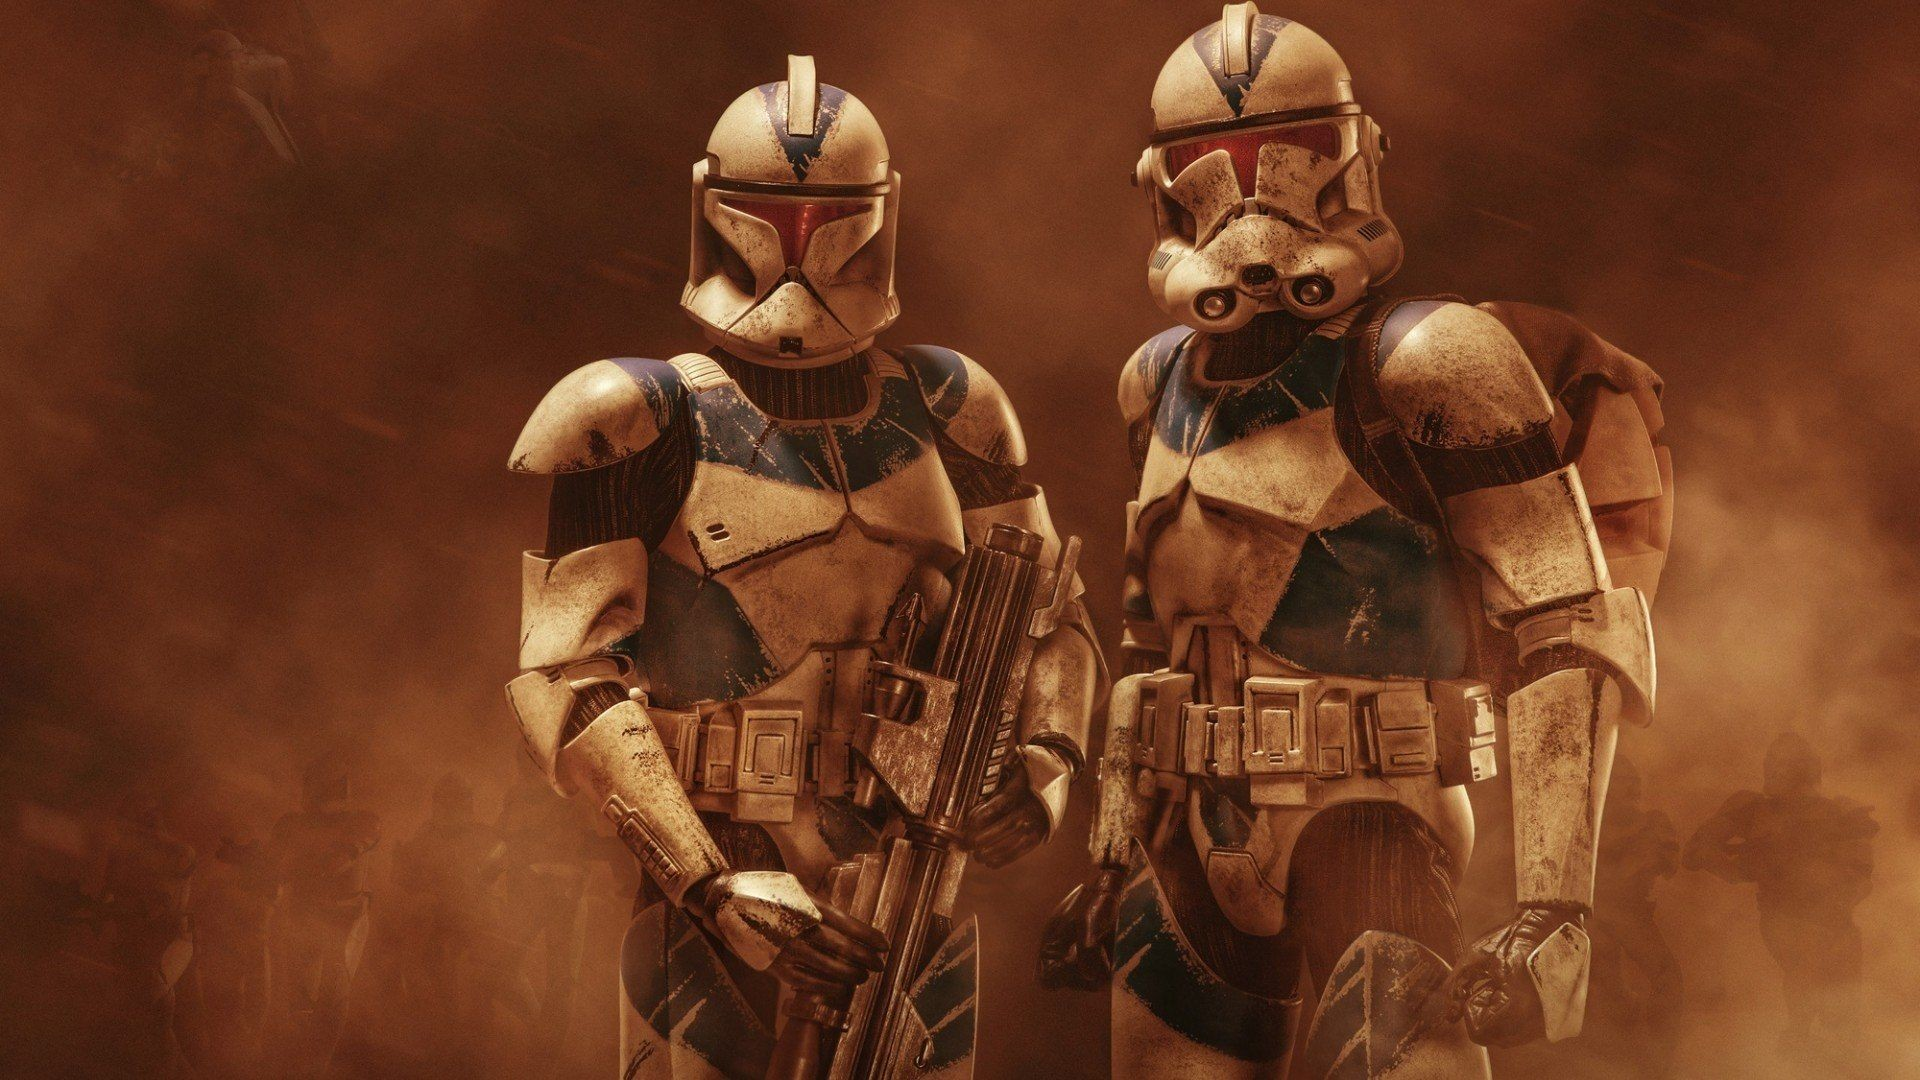 Imperial stormtroopers in Star Wars wallpapers and images .